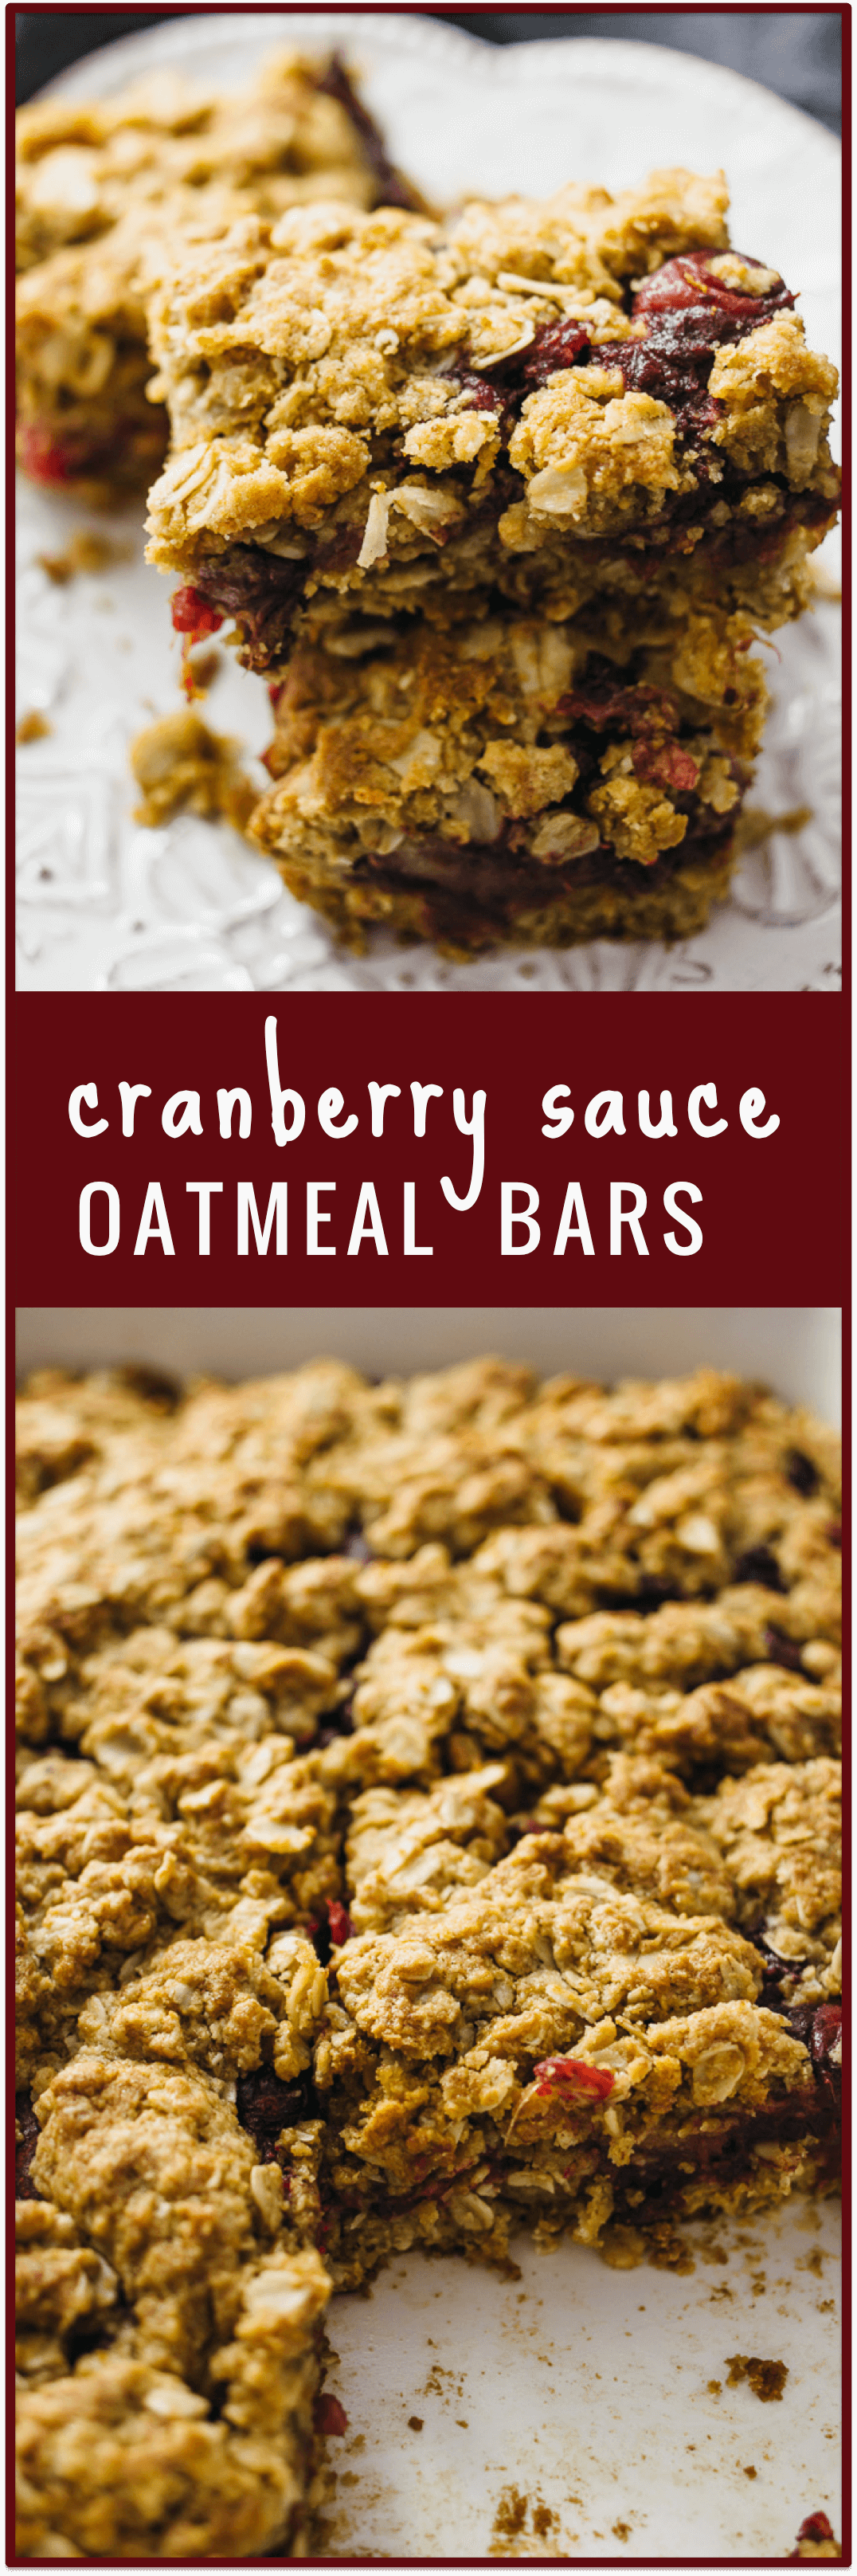 Cranberry sauce oatmeal bars - Got some leftover cranberry sauce from Thanksgiving? This recipe shows you how to use it up to make these amazing cranberry sauce oatmeal bars with brown sugar that are great for breakfast or dessert! - savorytooth.com